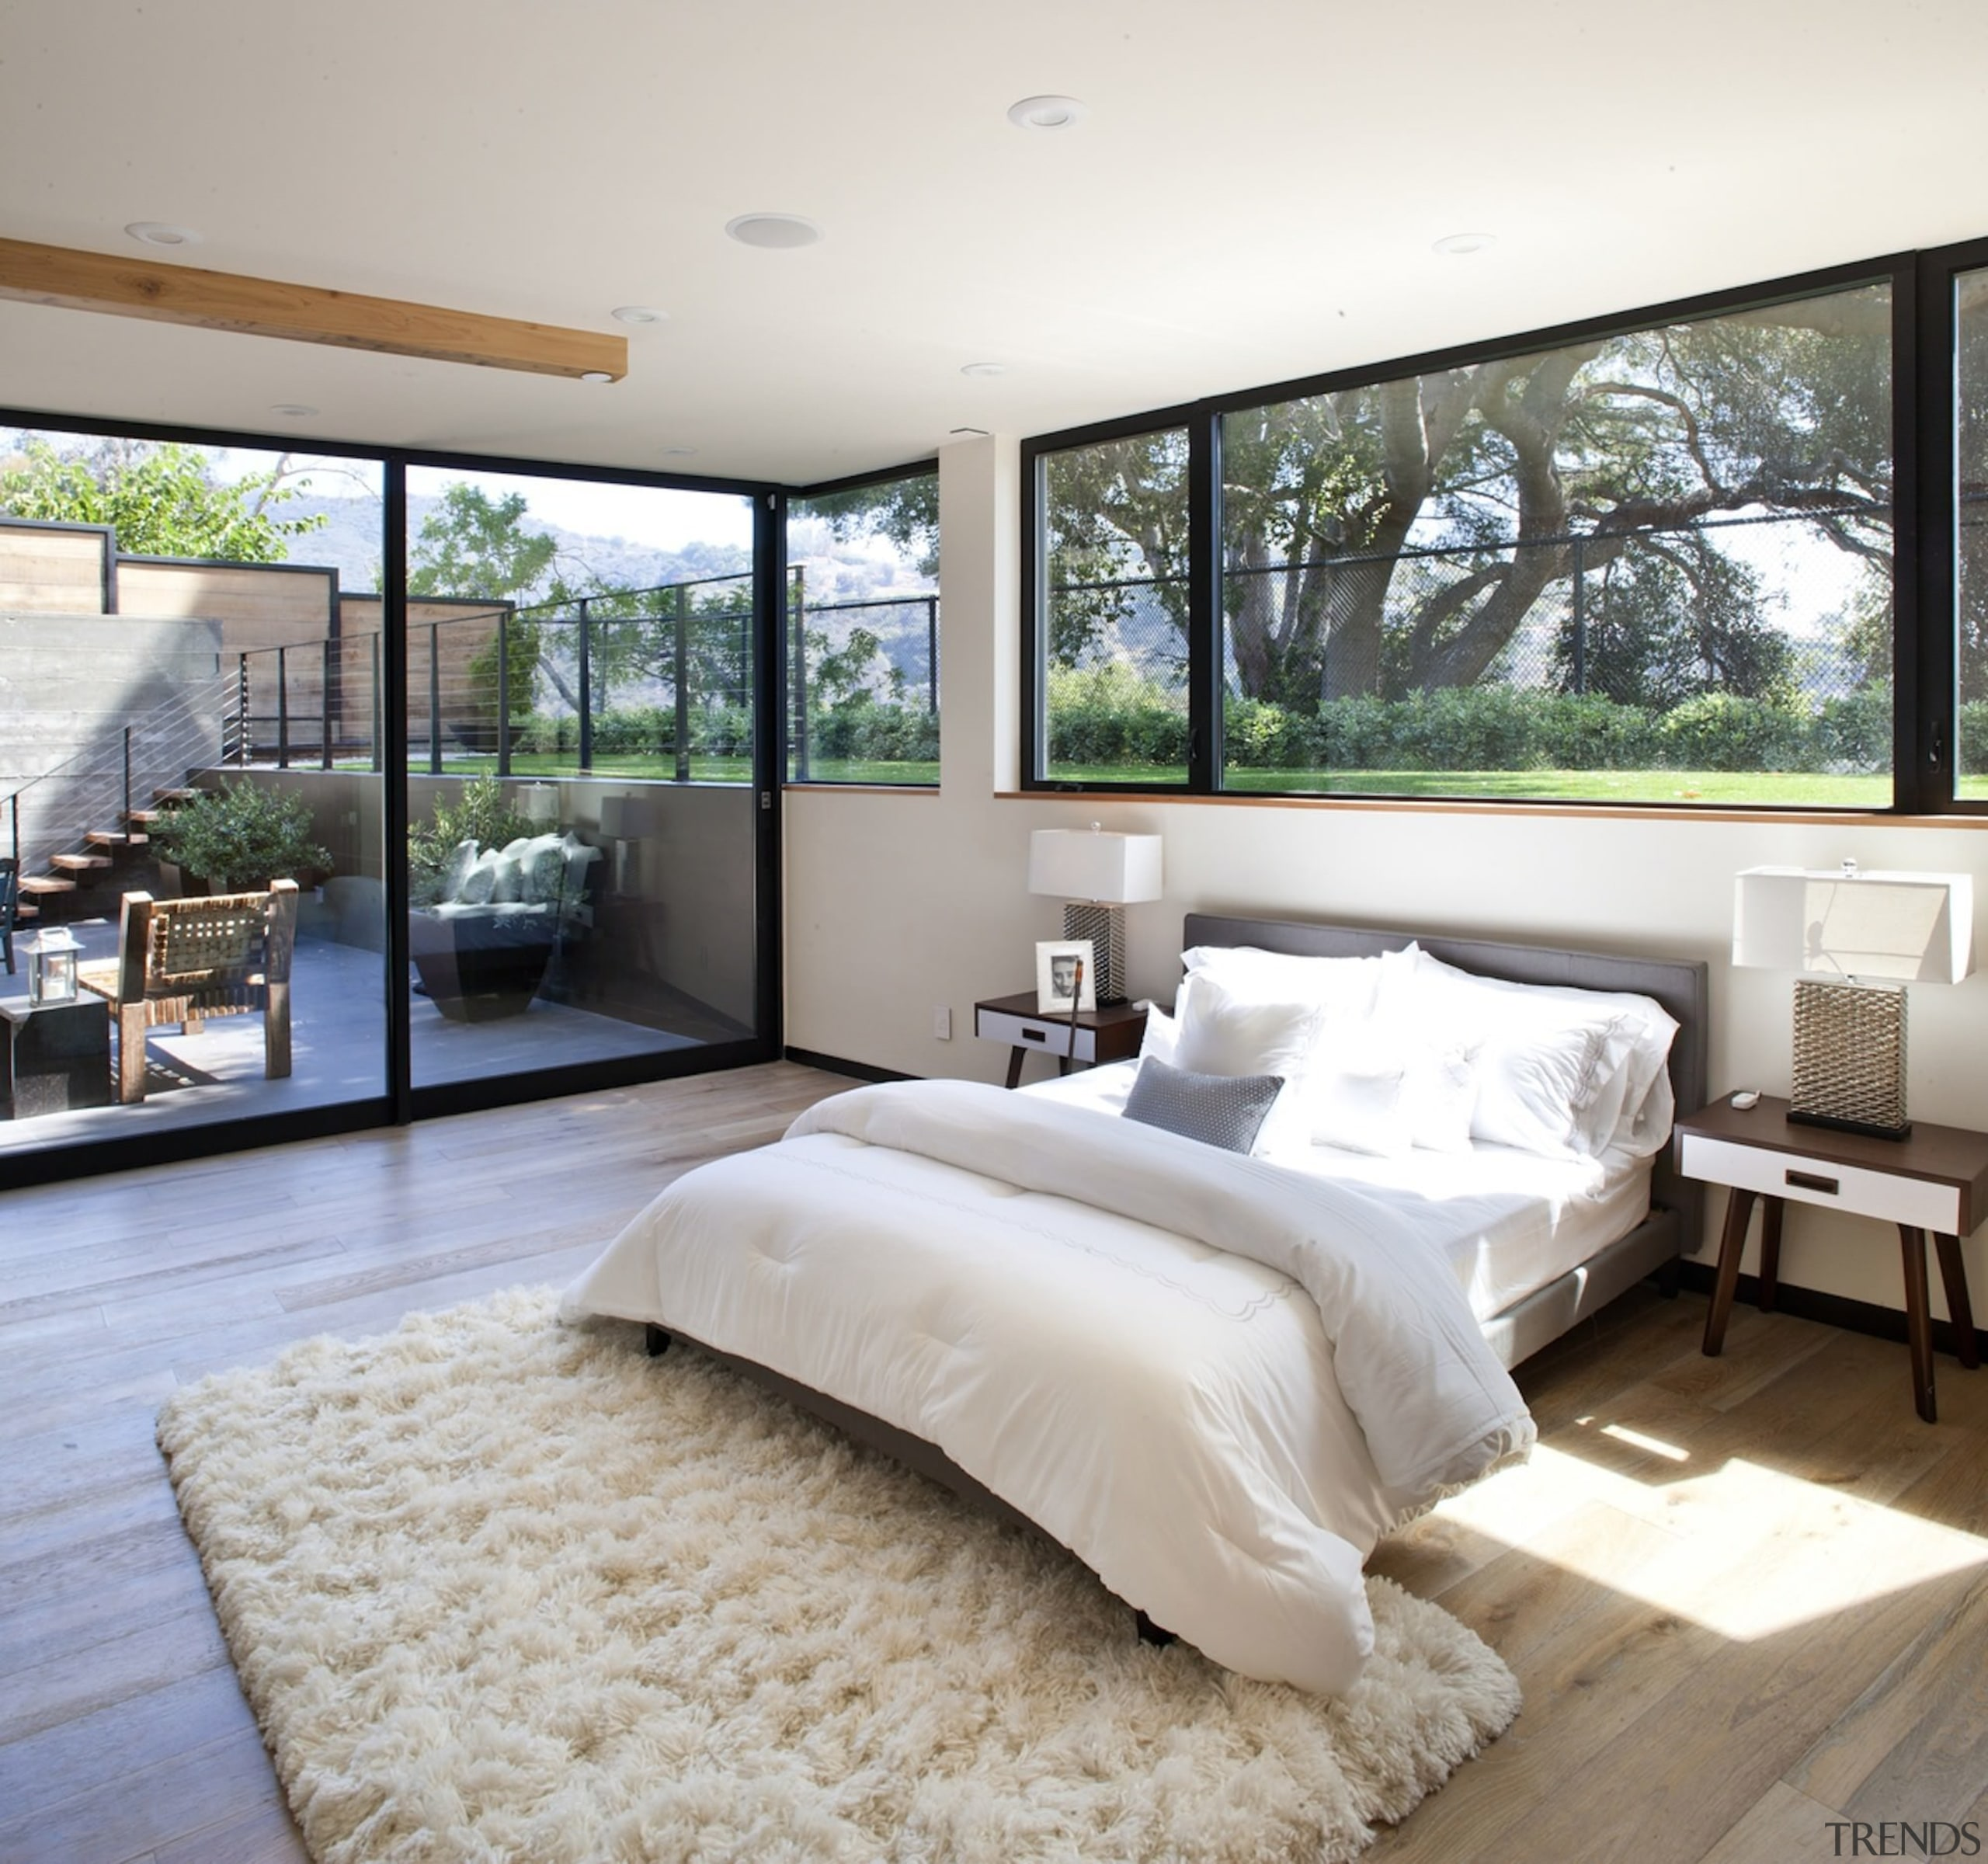 A sunken bedroom with views out to the bed frame, bedroom, ceiling, floor, home, interior design, mattress, wall, window, wood, gray